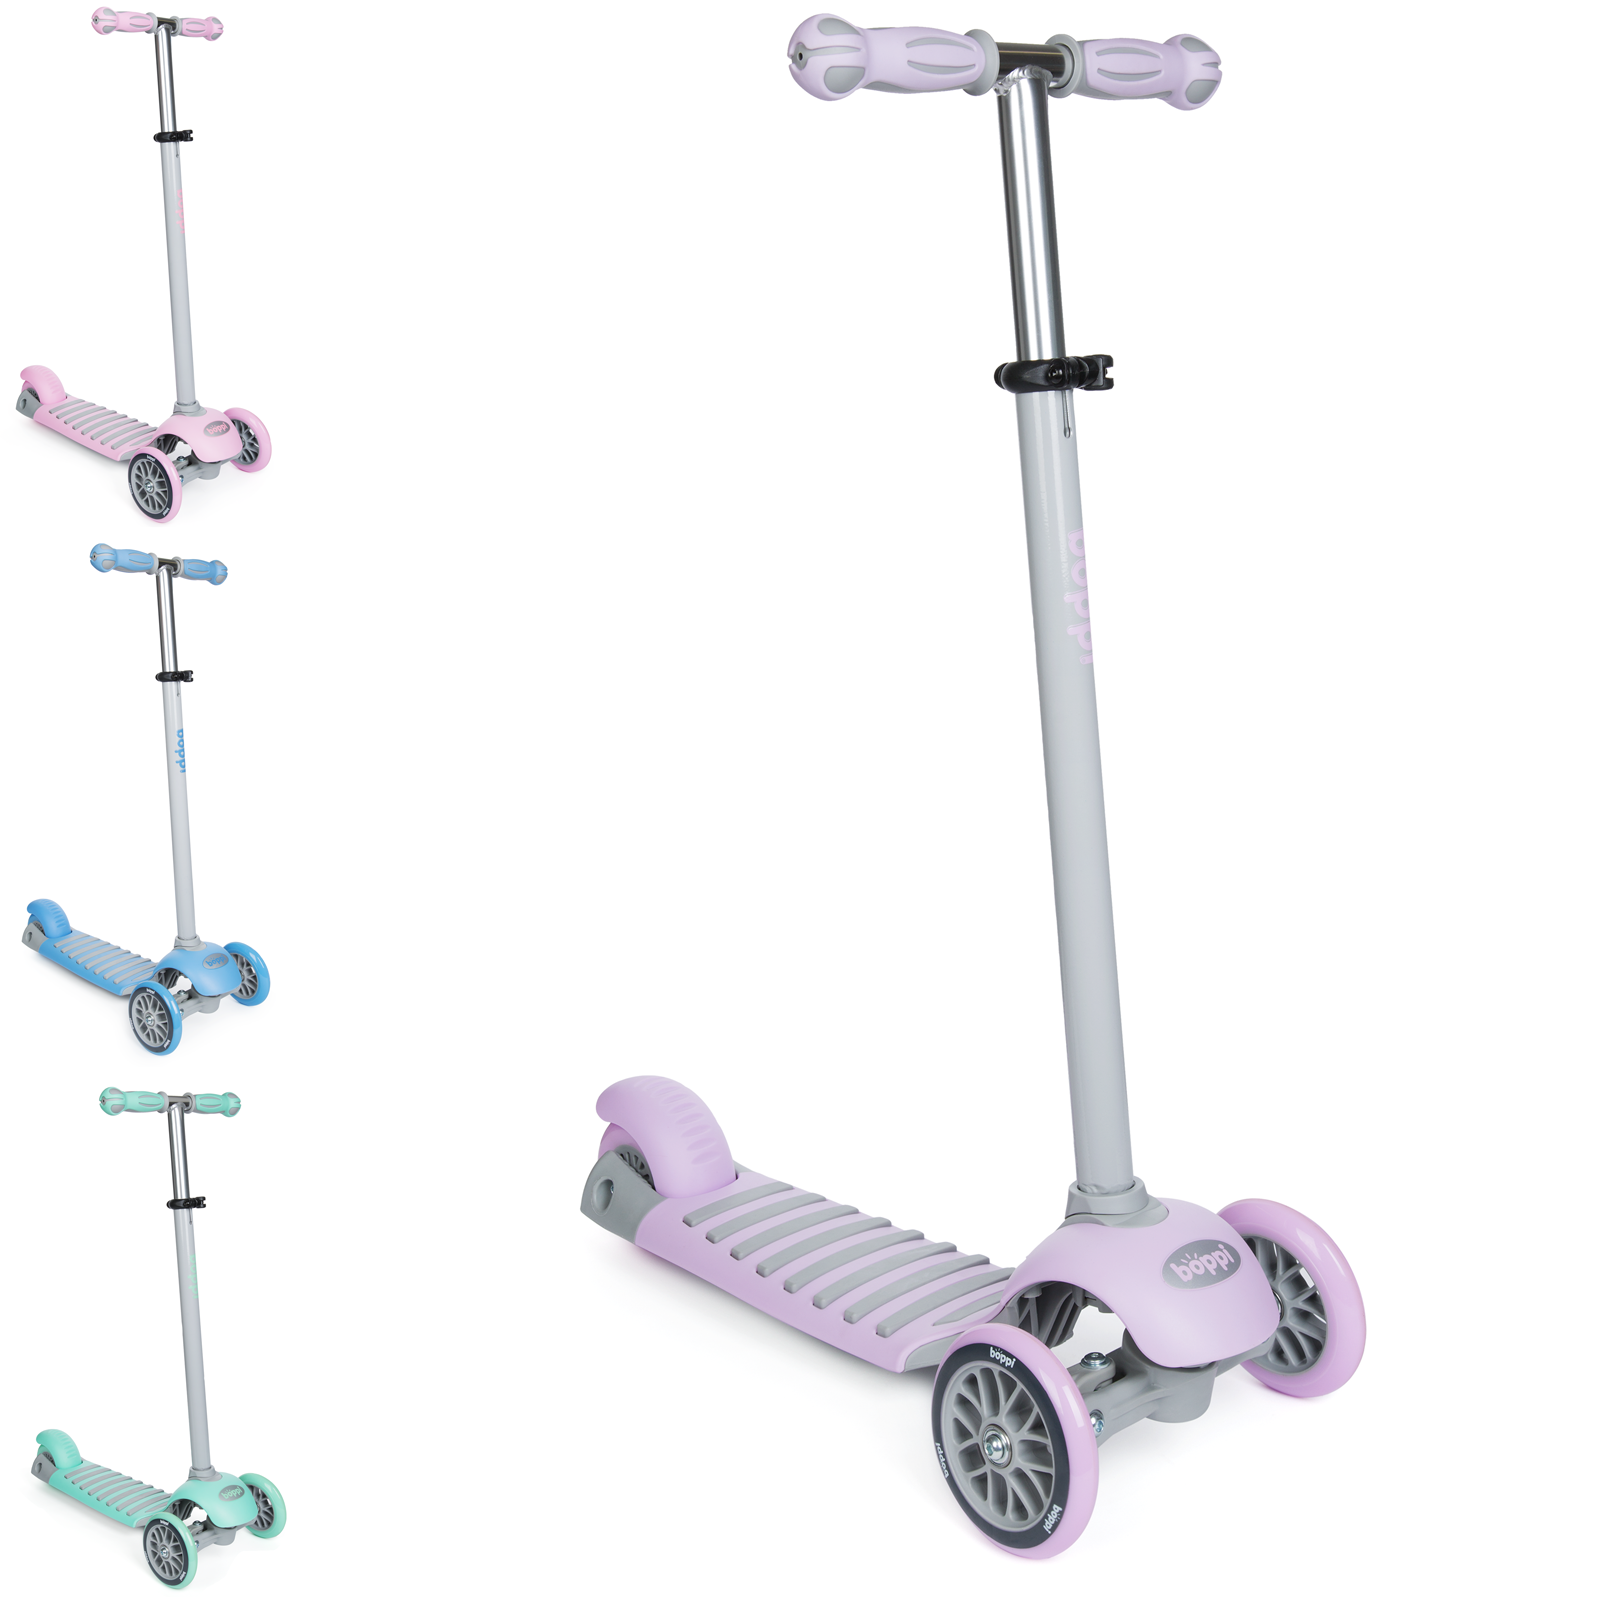 boppi 3 Wheeled Kids Toddler Push Scooter Aged 3-8 Years Old for Girls and Boys